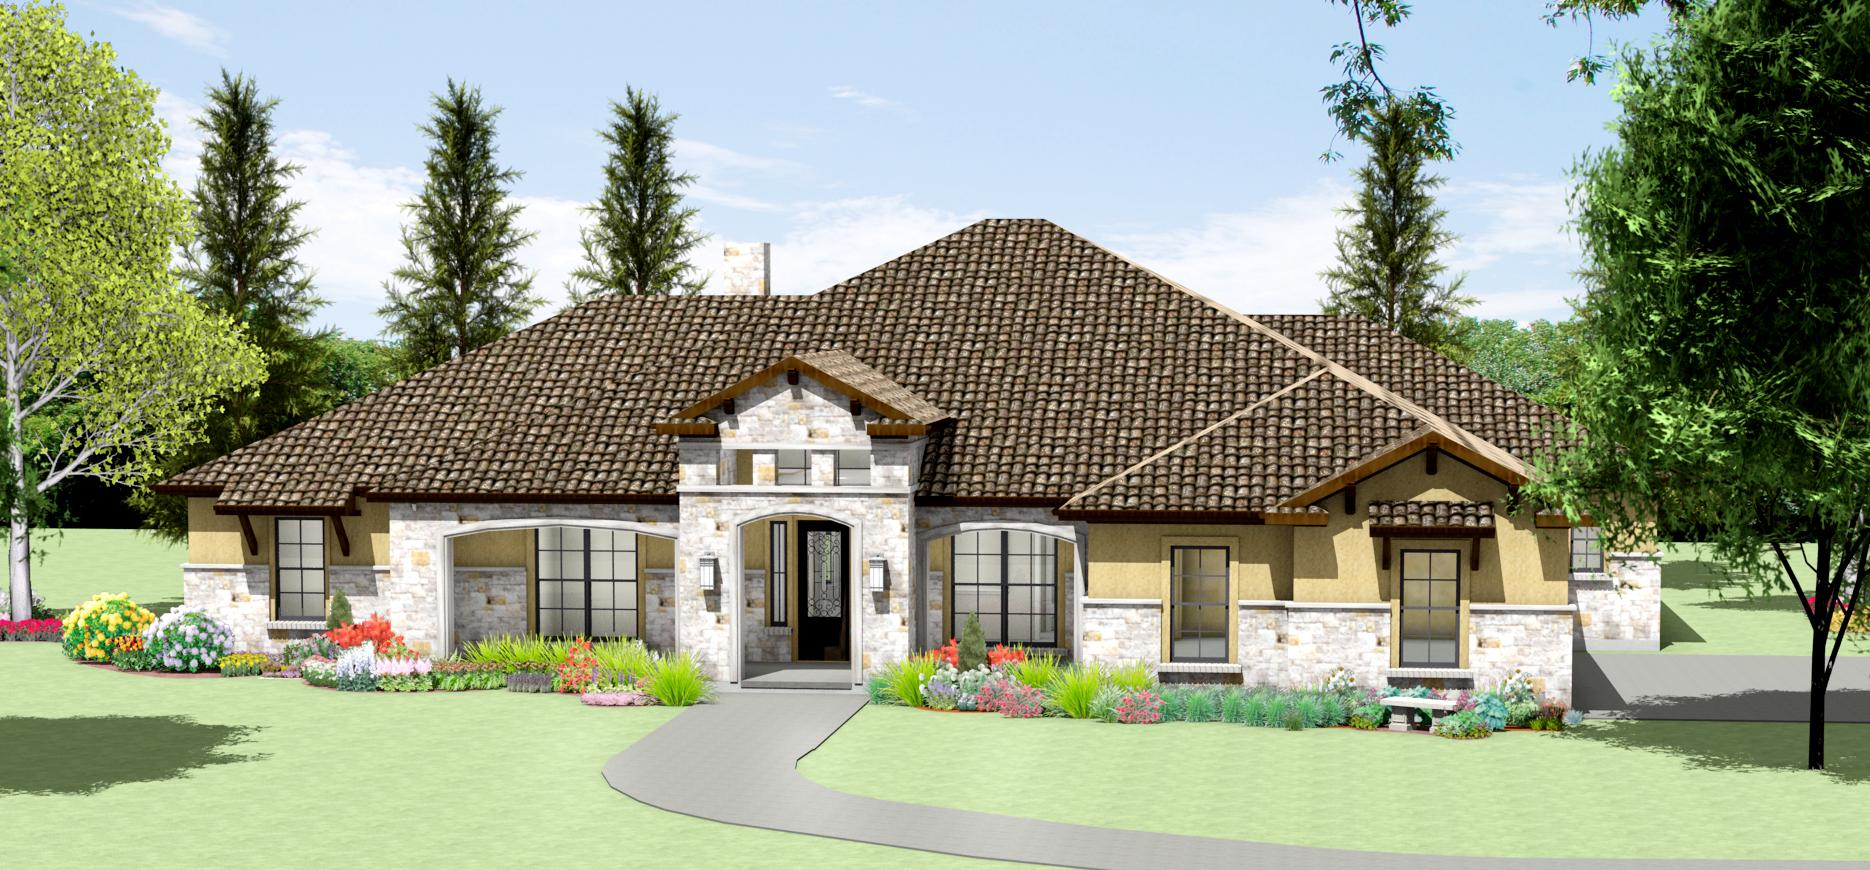 S3450r texas tuscan design texas house plans over 700 for Texas ranch house plans with porches